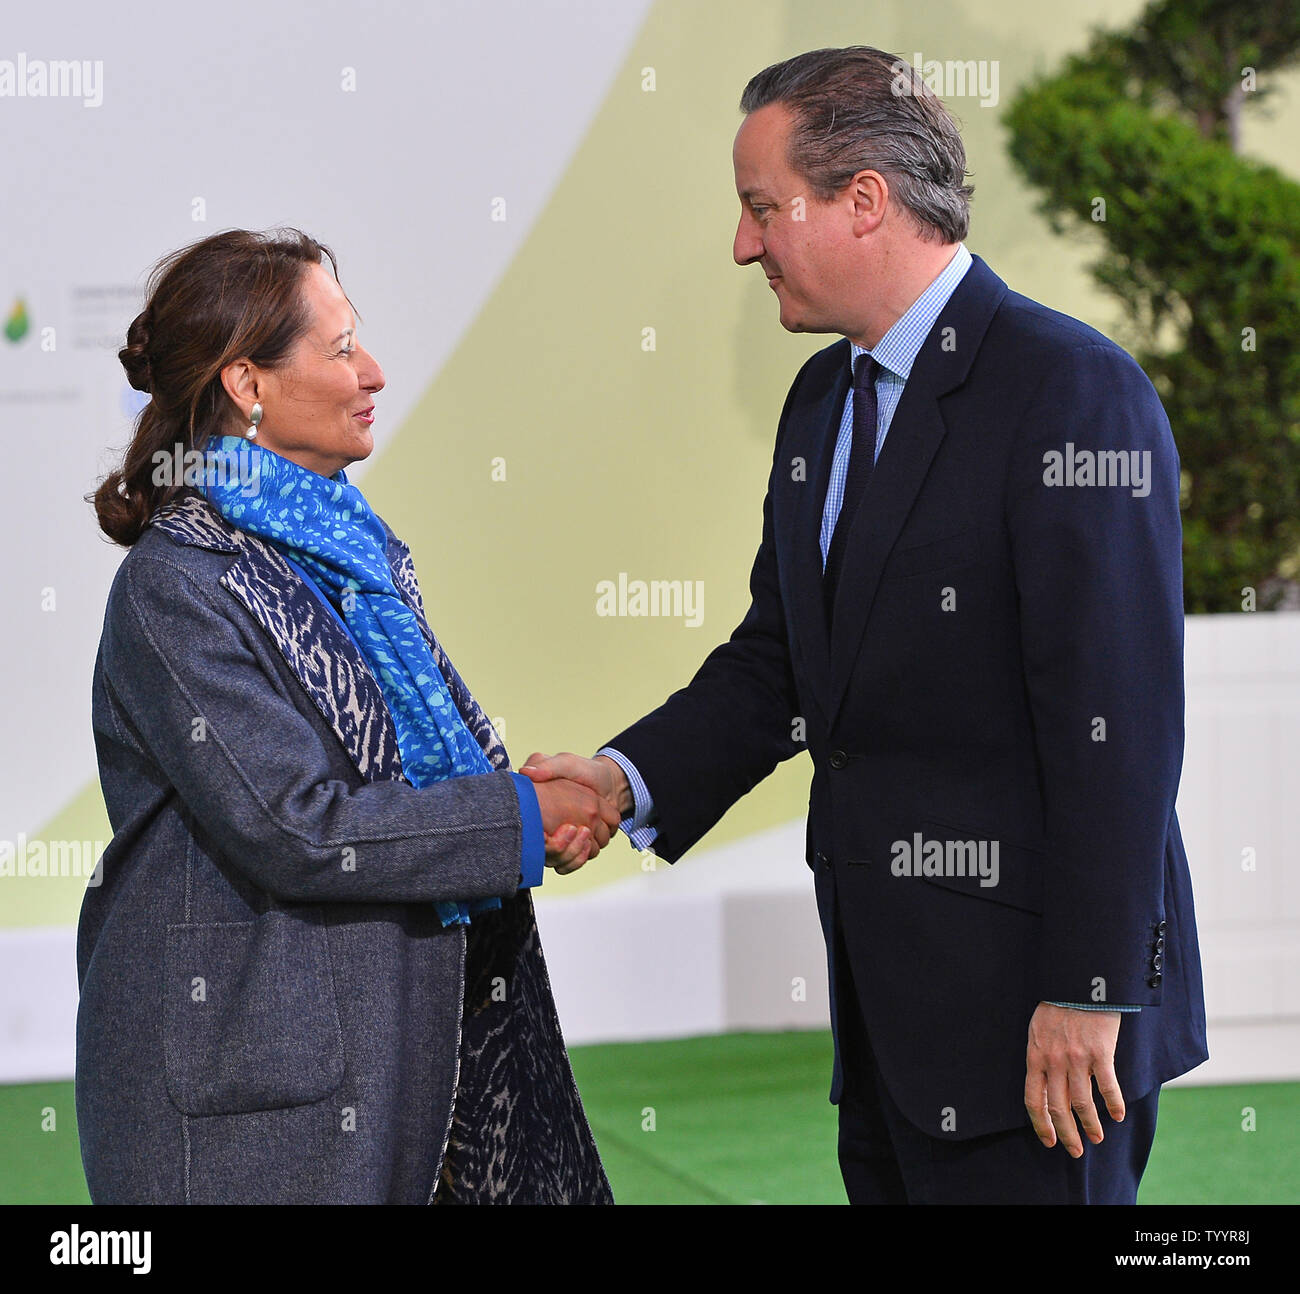 British Prime Minister David Cameron (R) is greeted by French Environment Minister Segolene Royal at the United Nation's 21st climate change conference at Le Bourget near Paris on November 30, 2015. The almost 150 heads of state and representatives from 200 countries in attendance will attempt to negotiate a legally binding agreement to limit worldwide carbon emissions with the goal of keeping global warming under 2 degrees Celsius.   Photo by David Silpa/UPI - Stock Image